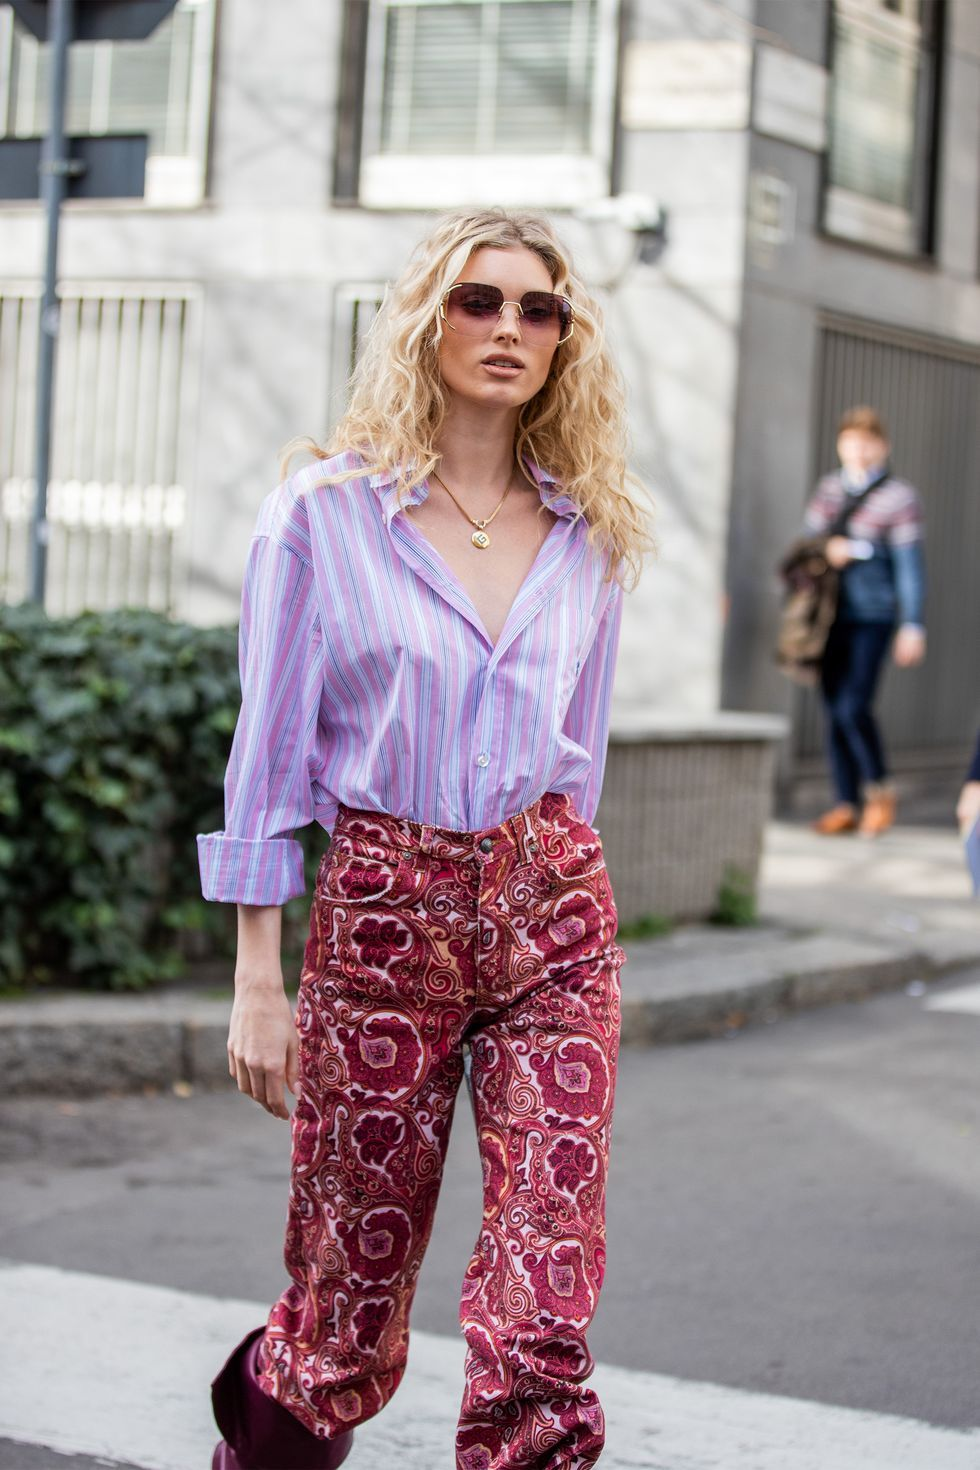 Eight Spring Outfit Ideas for 8 - What to Wear This Spring